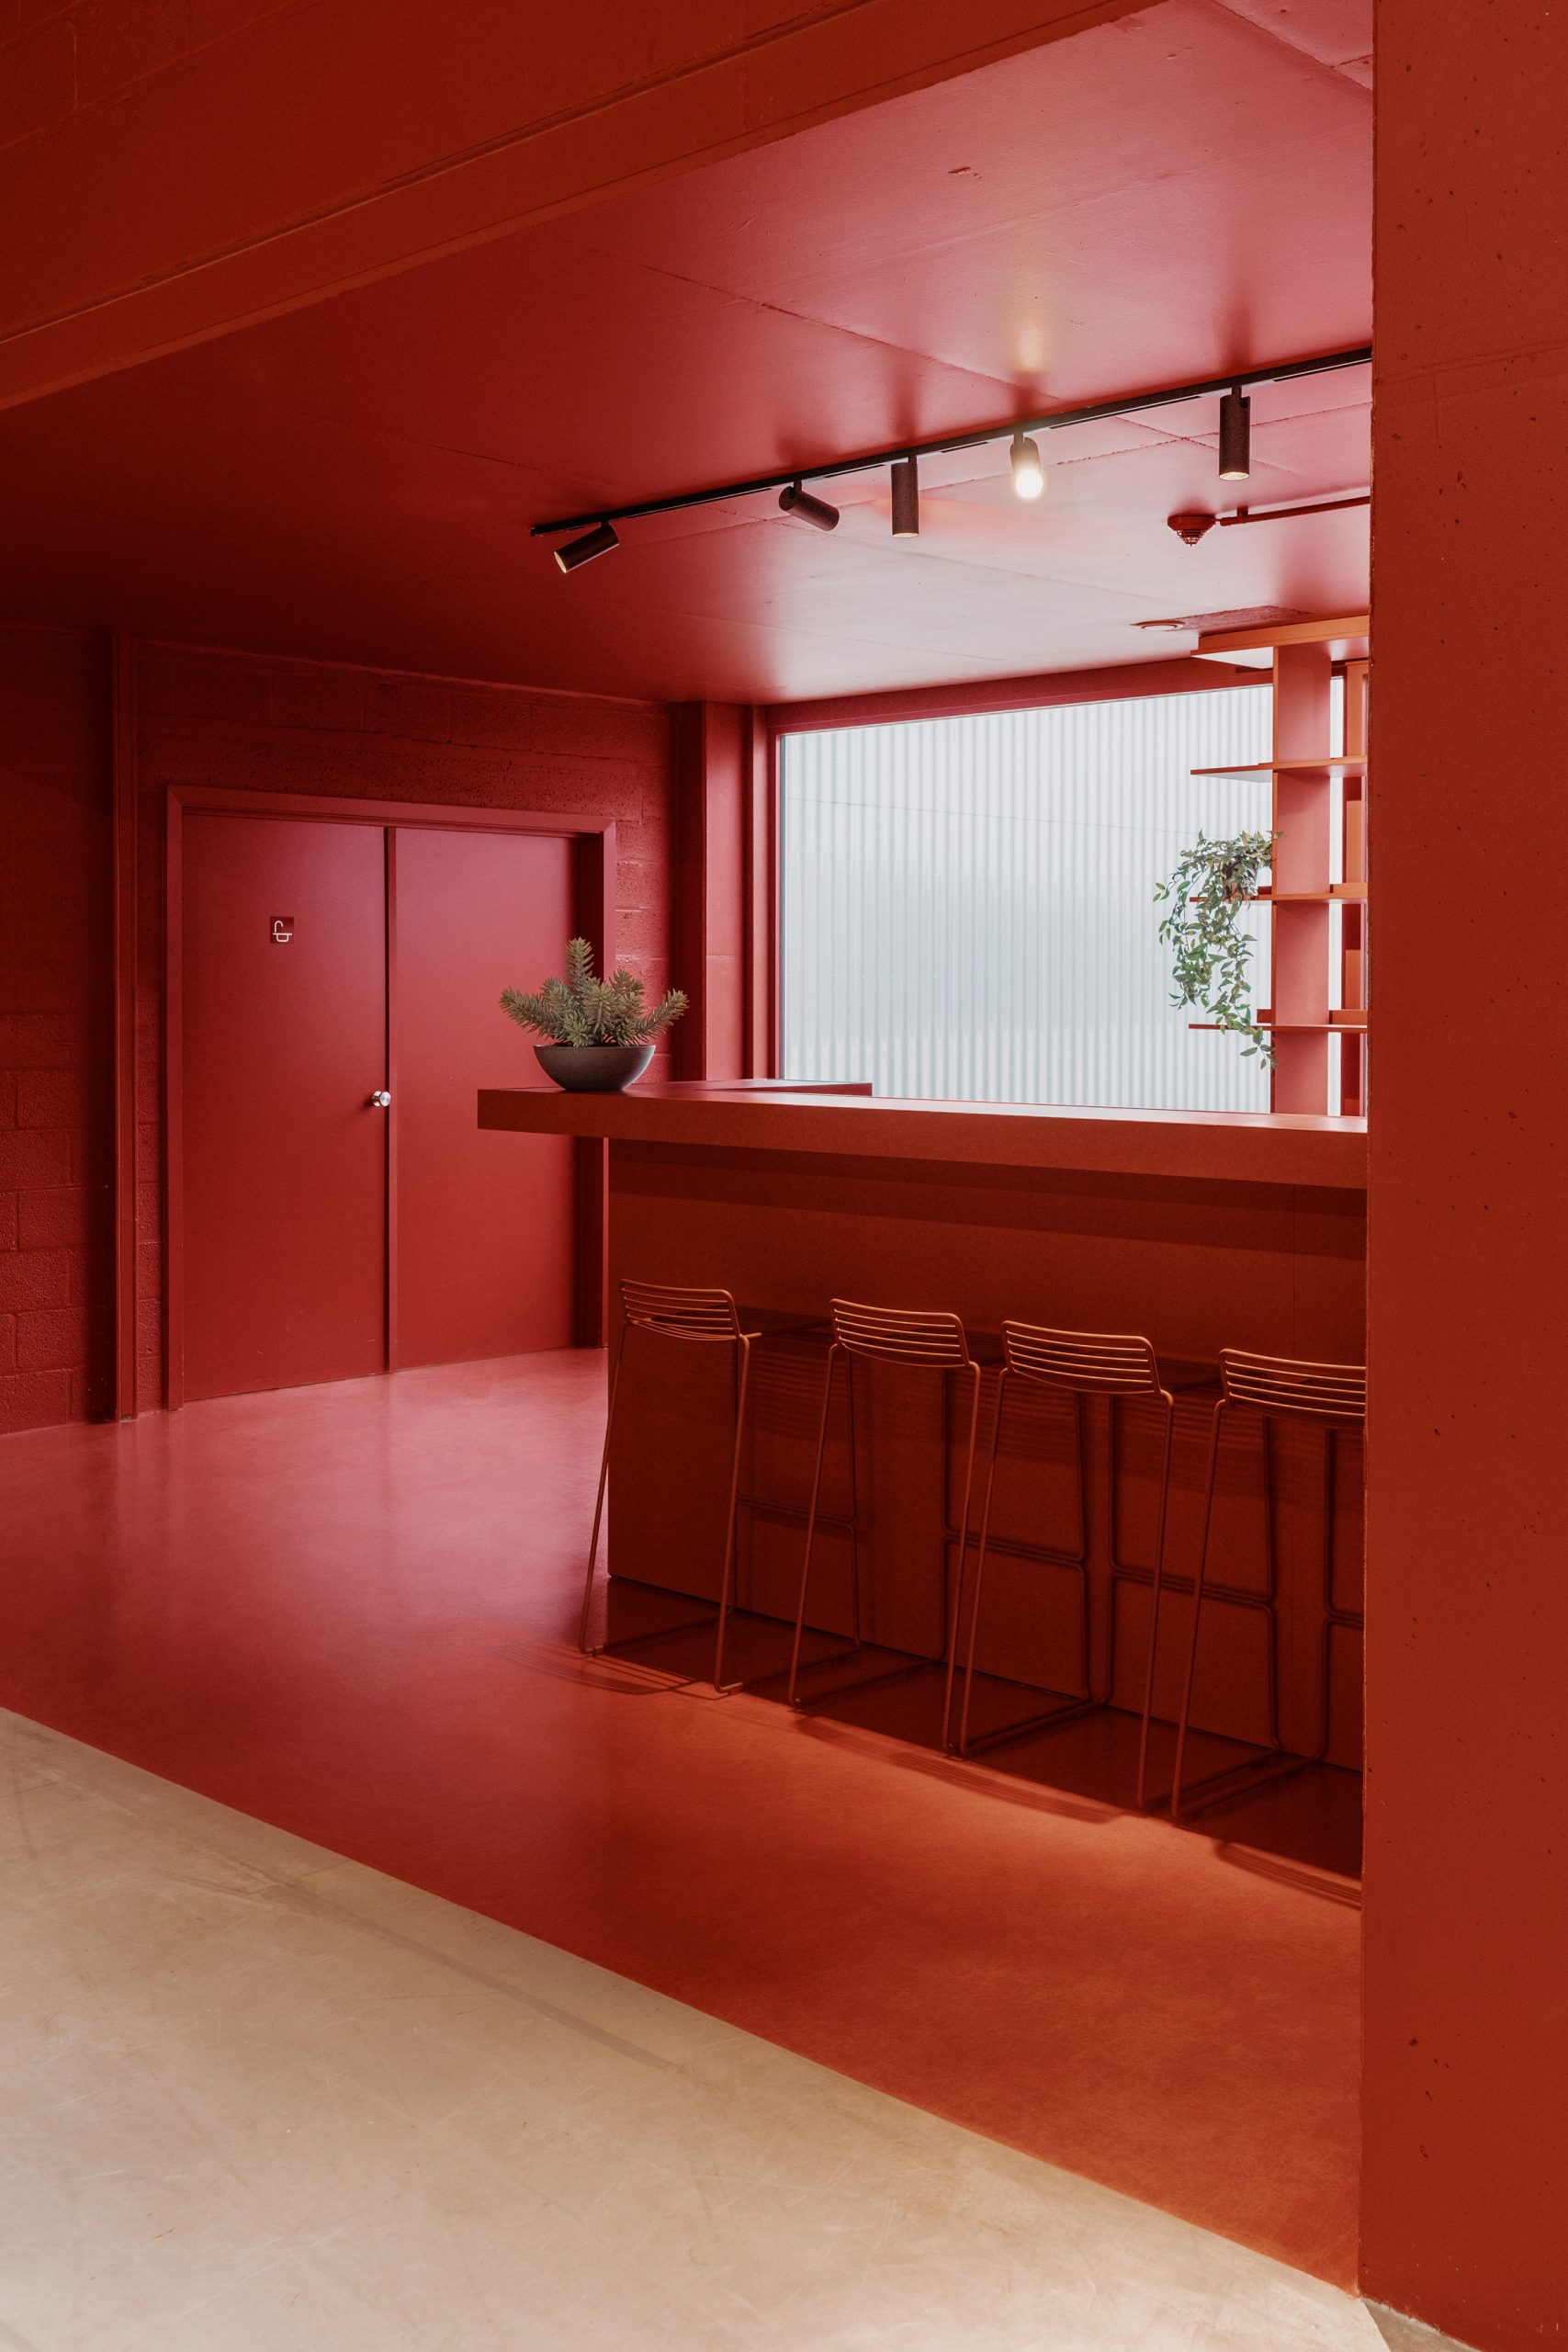 The bar area is painted red by Studio Anton Hendrik Denys